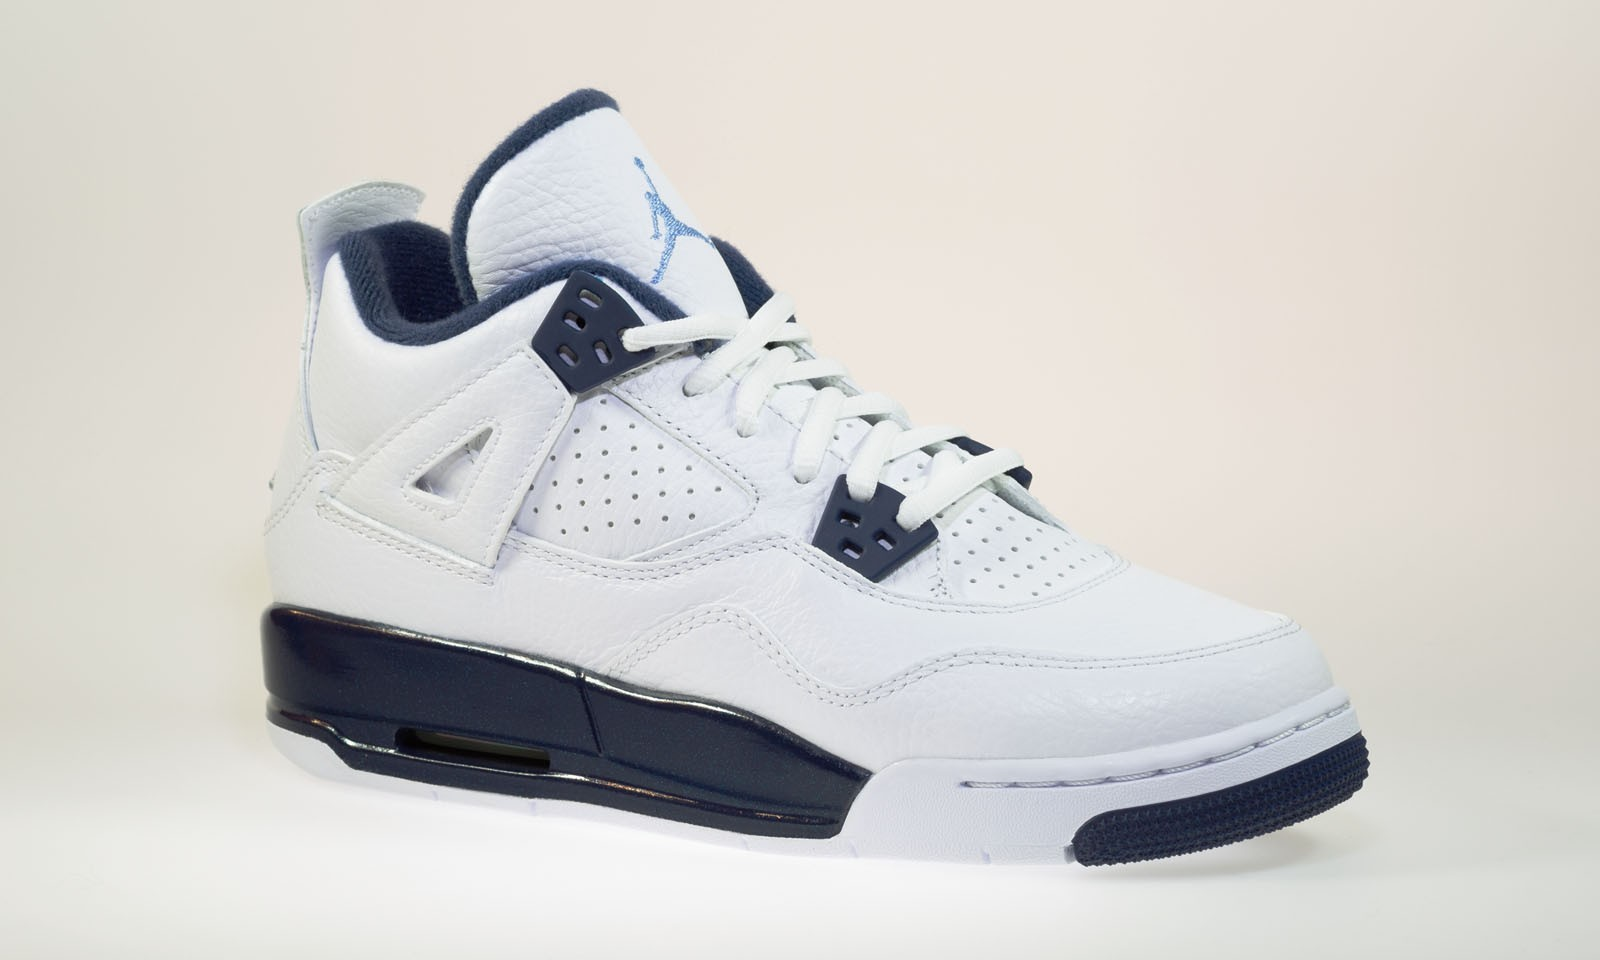 d030dcbc704125 Shop for Air Jordan 4(IV) Retro BG (Boys  GS) White Legend Blue ...